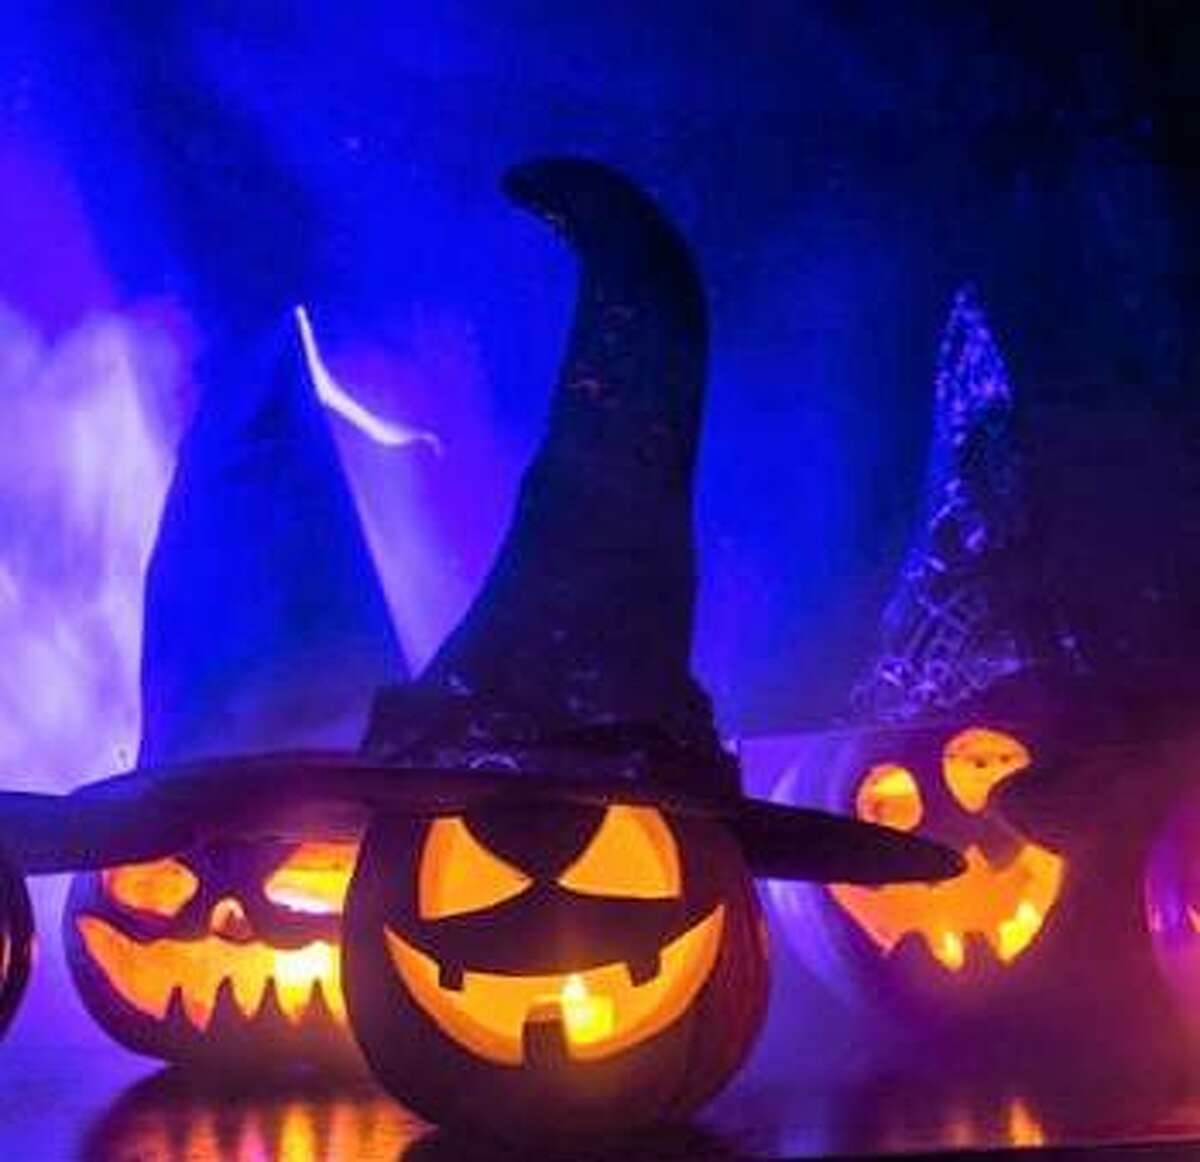 Dust off your broom, throw on your best witchy wear and join Witches Night Out for an adult night out, presented by the Ed/Glen Junior Service League, Saturday night. Enjoy live music performed by Johnny Rock-itt and the Double Wide Symphony, dancing, shopping, food and drinks from 4-9 p.m. at Miner Park, 194 S. Main St., in Glen Carbon. There will be free psychic readings, a photo booth and contests. Tickets available at www.eventbrite.com/e/2021-witches-night-out-tickets-160978138947